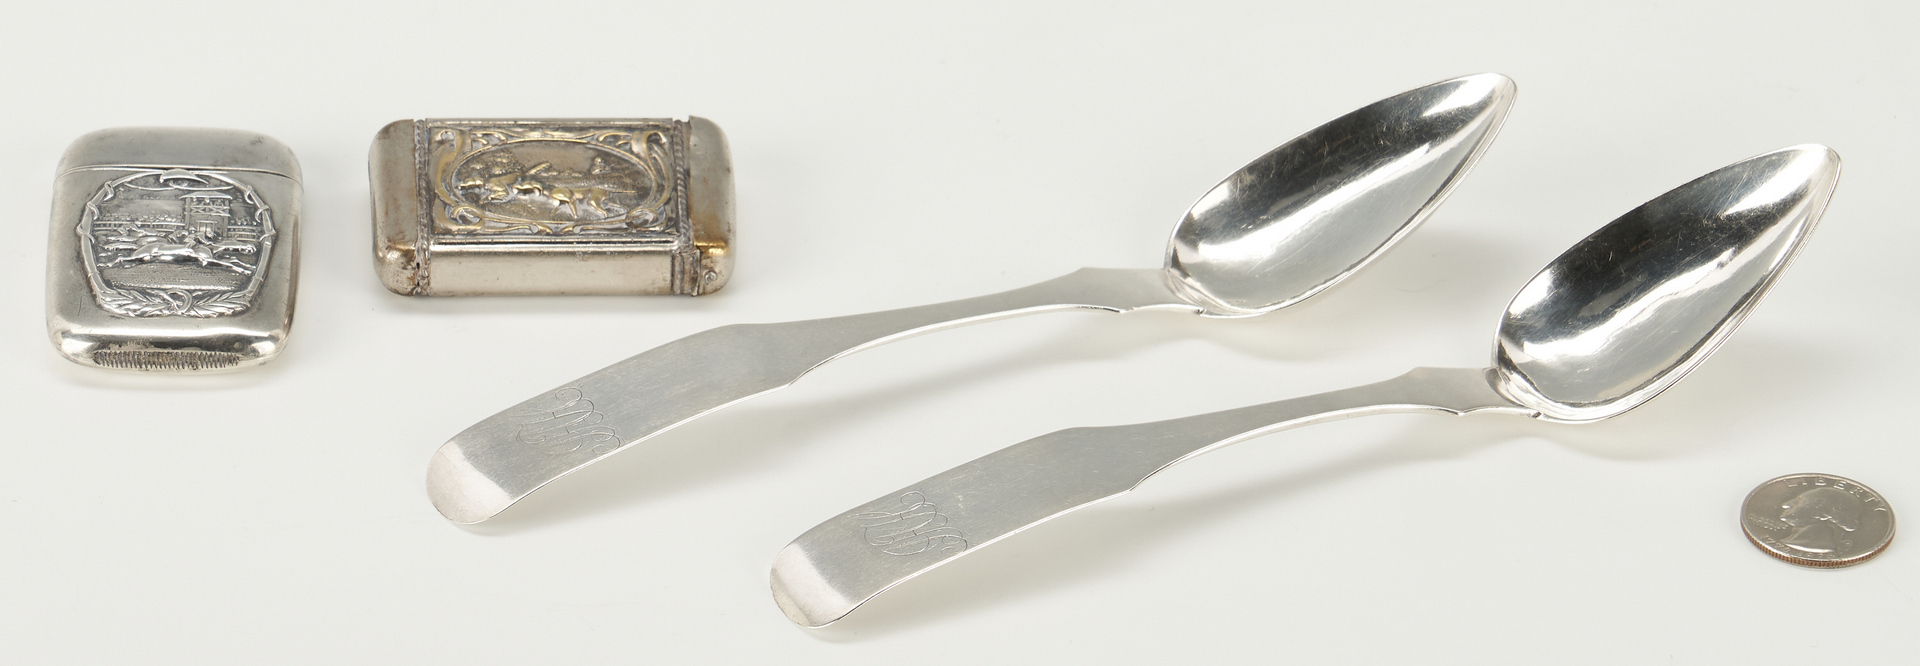 Lot 88: 2 KY Coin Silver Spoons & 2 Silver Matchbox Covers